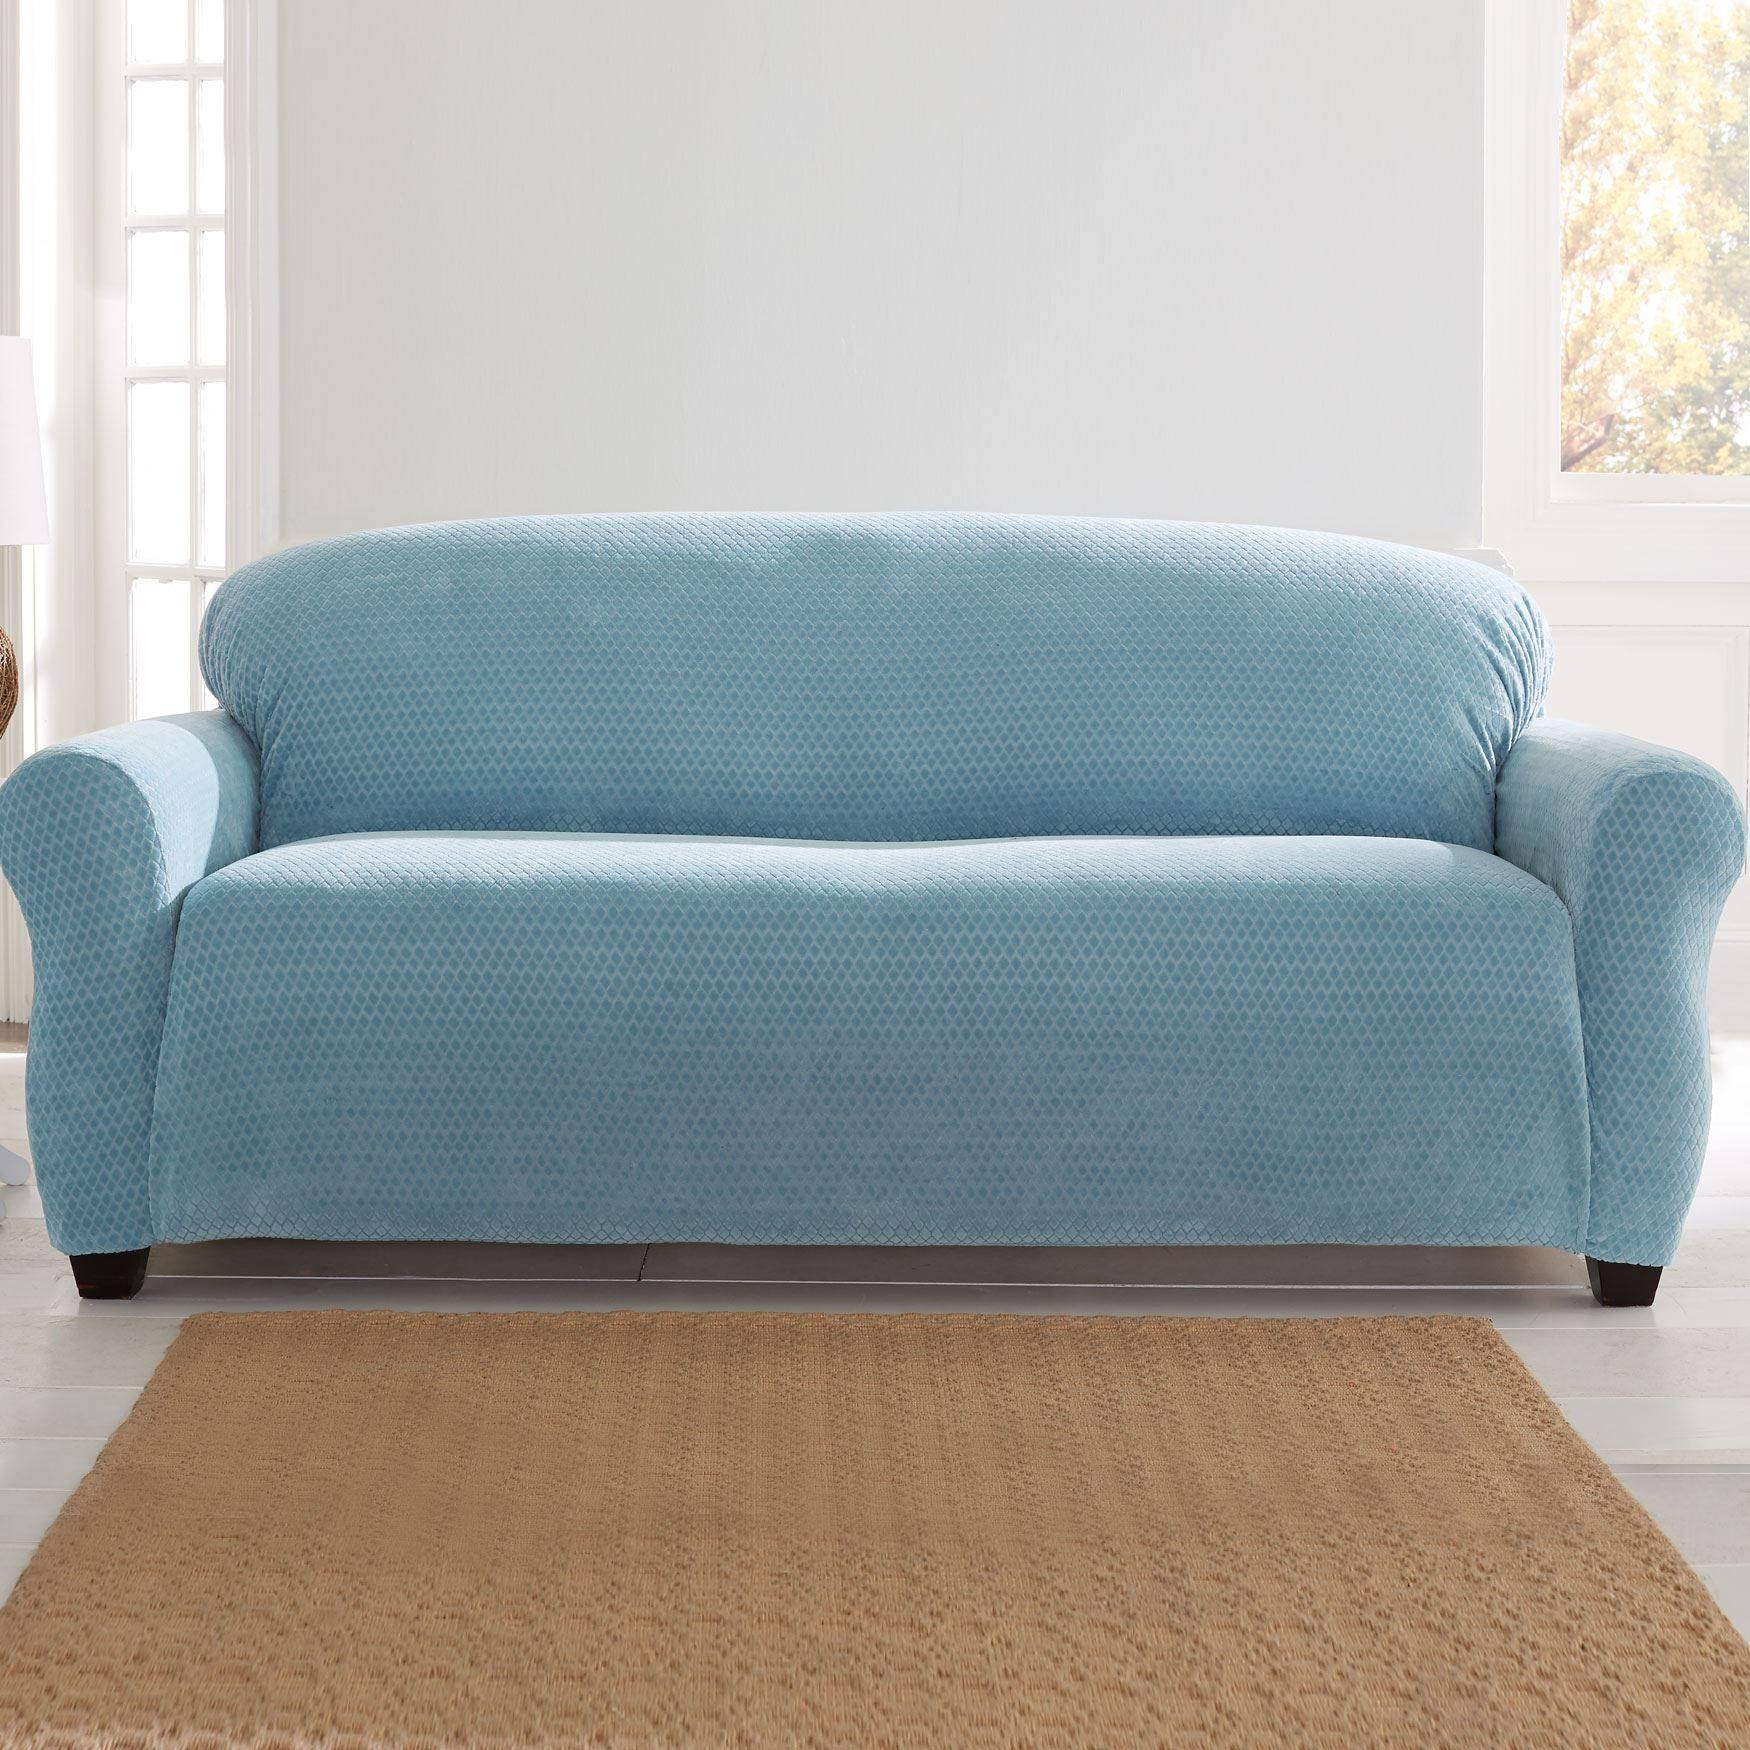 Brylanehome® Studio Stretch Diamond Extra Long Sofa Slipcover regarding Stretch Slipcover Sofas (Image 1 of 15)